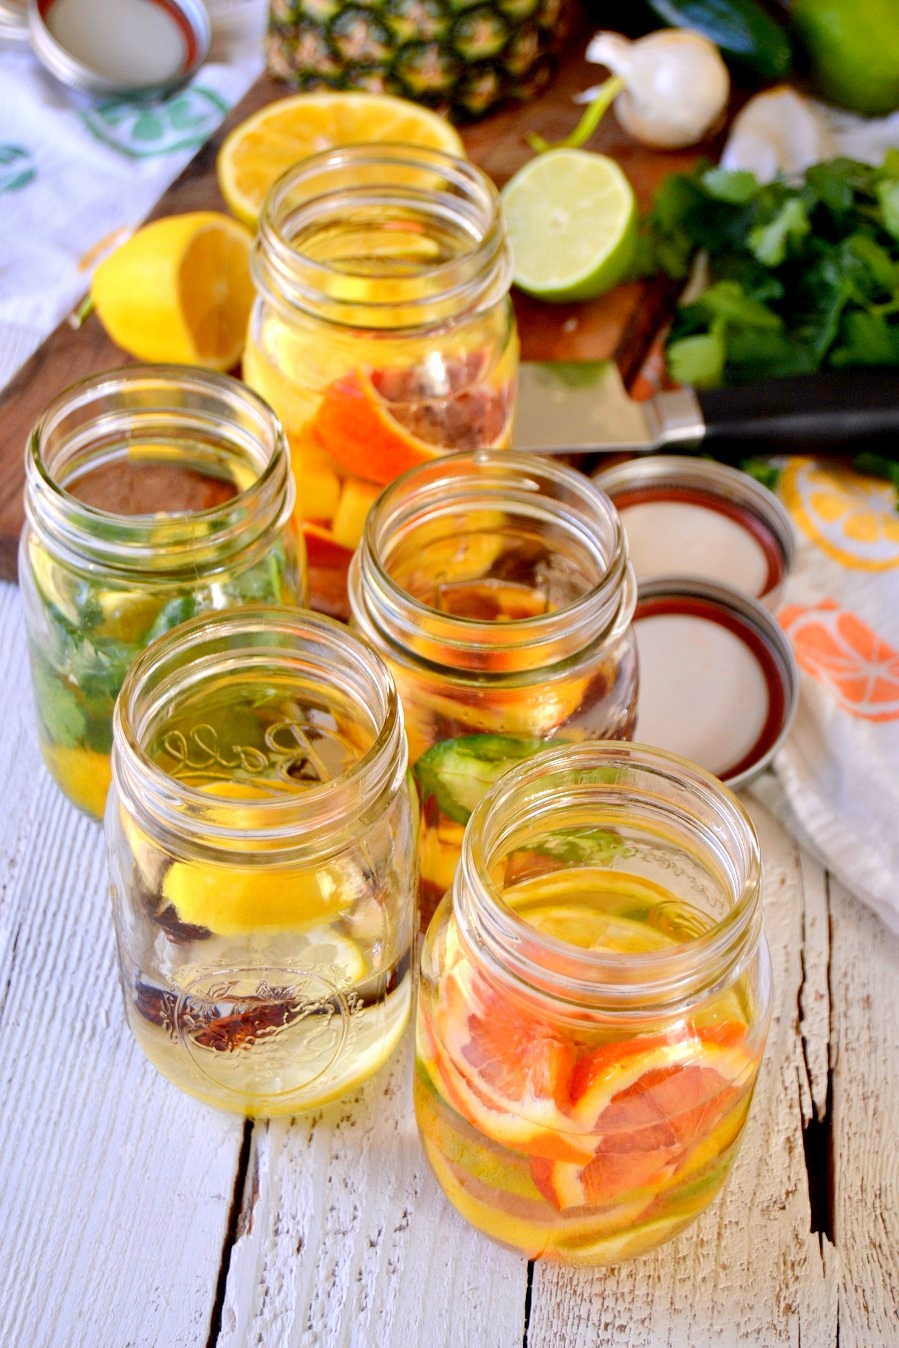 Fair Robin Revival - Five Simple Homemade Vodka Infusions